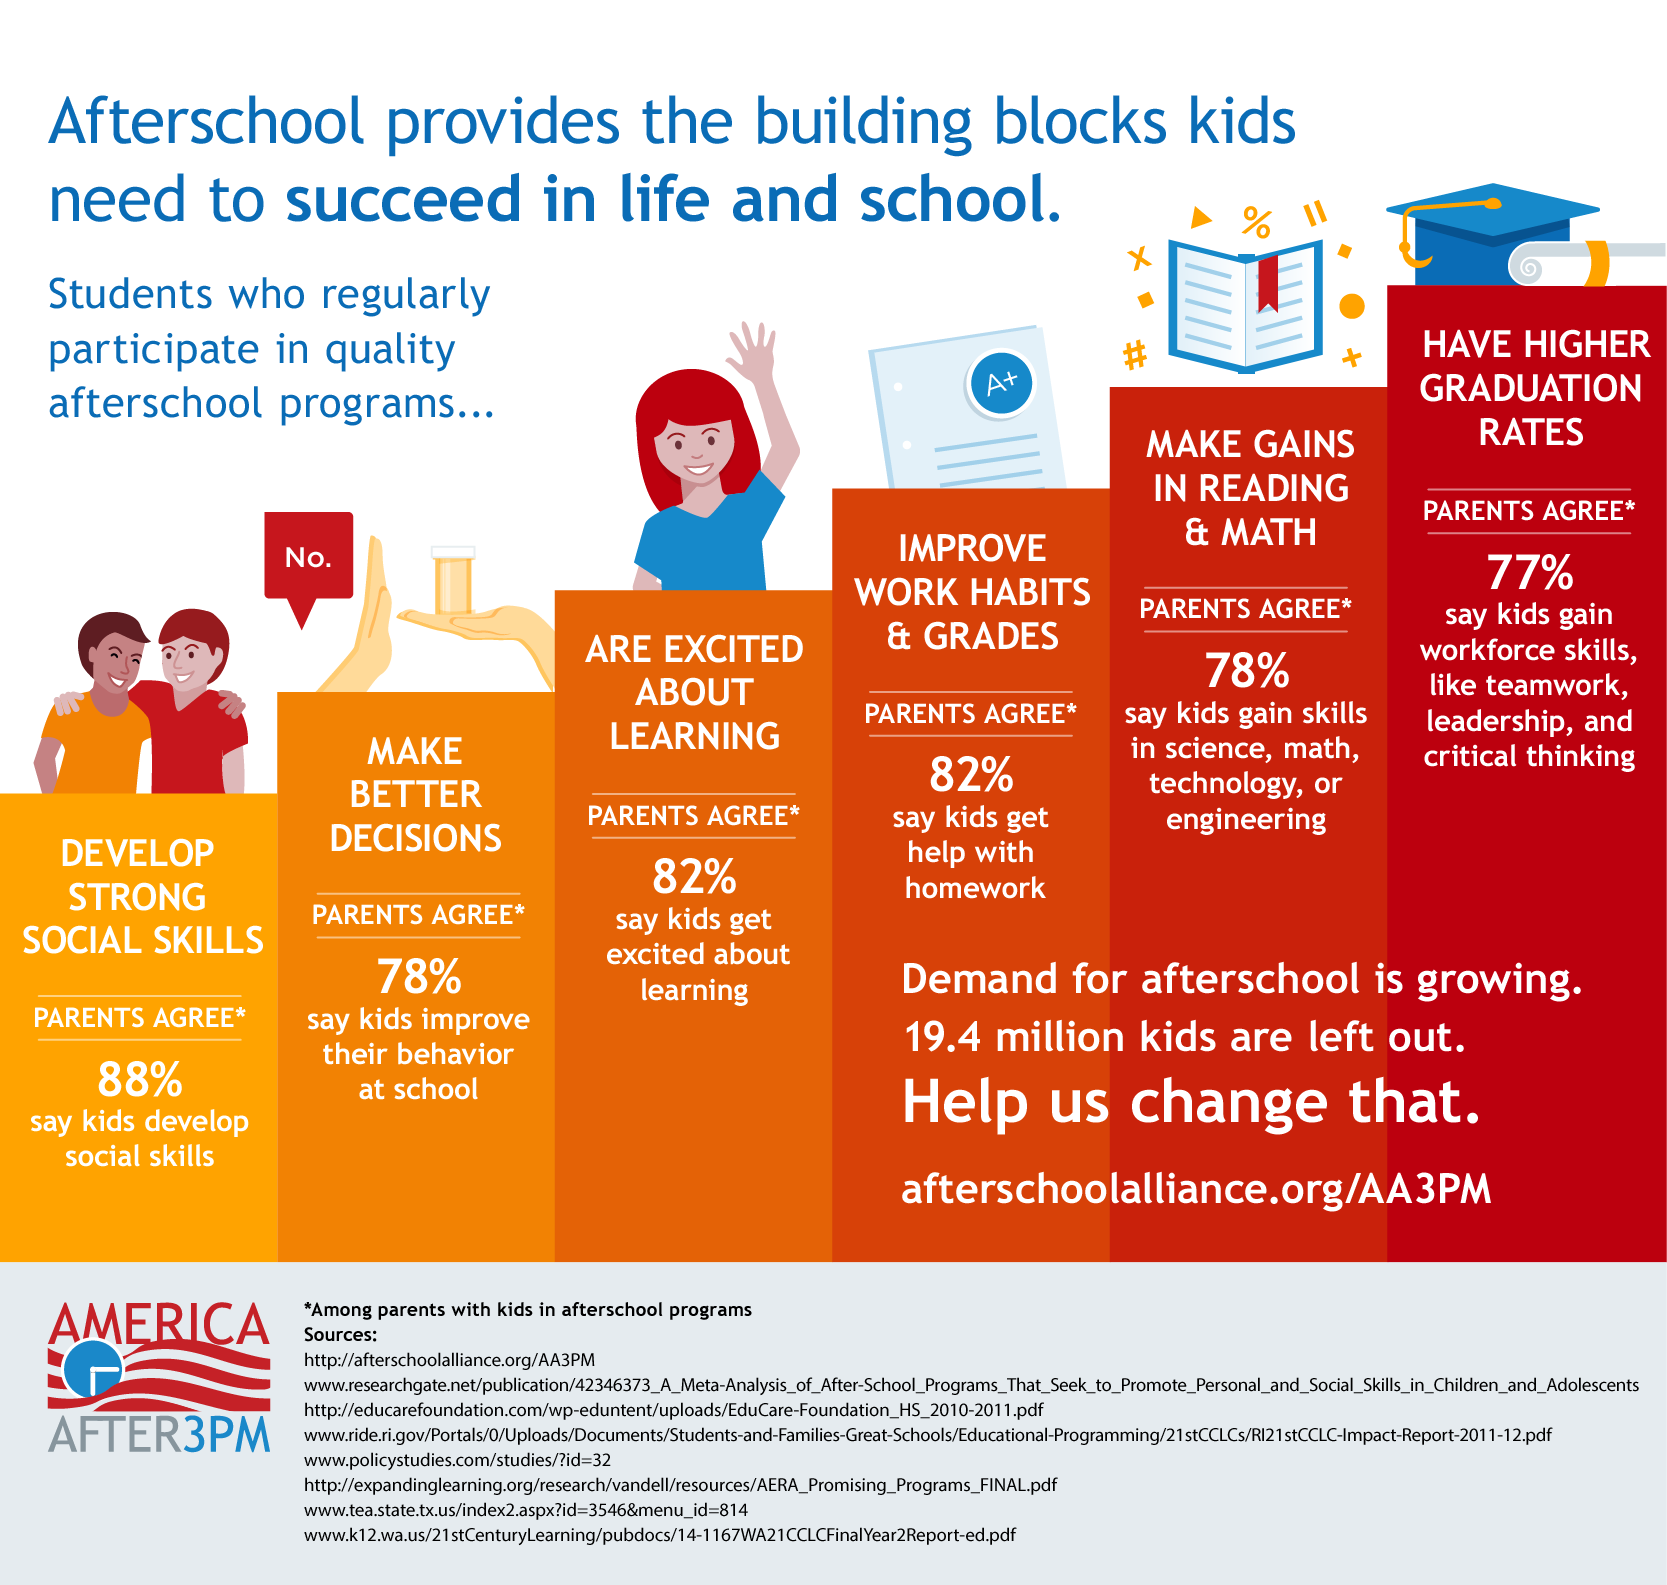 Afterschool Program Architecture Design